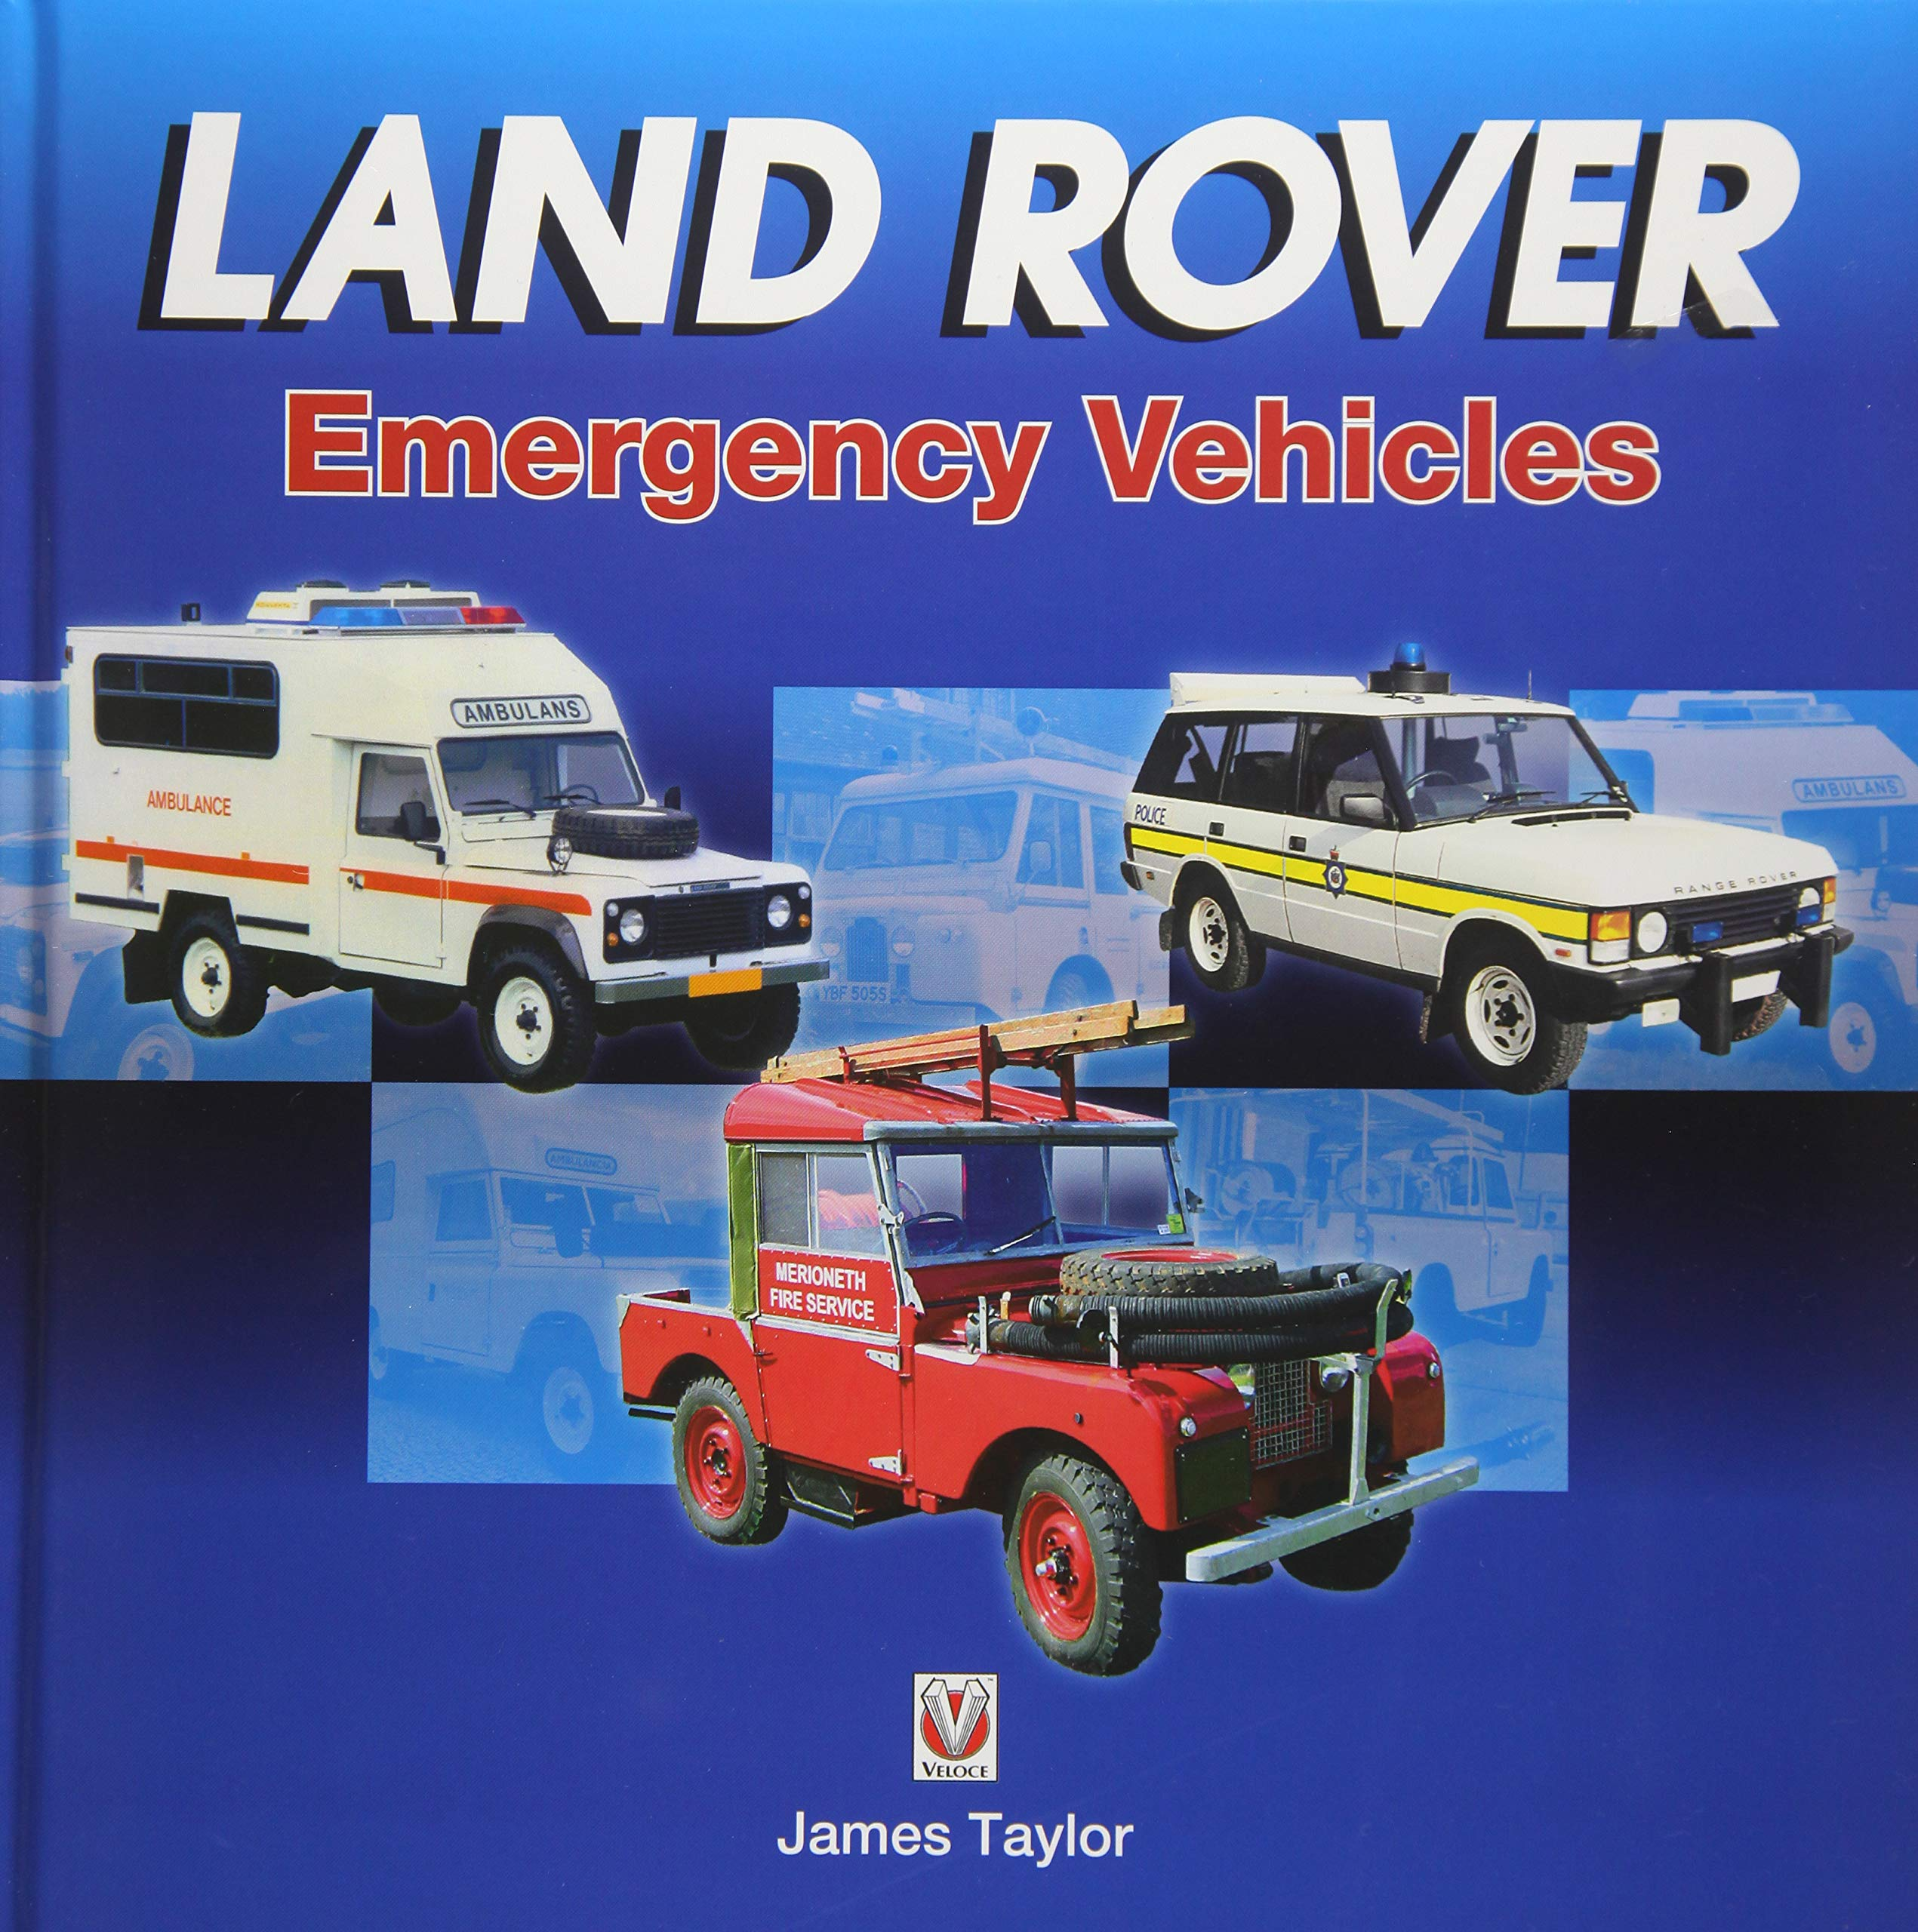 Land Rover Emergency Vehicles  Amazon.co.uk  James Taylor ... 9168a59aa